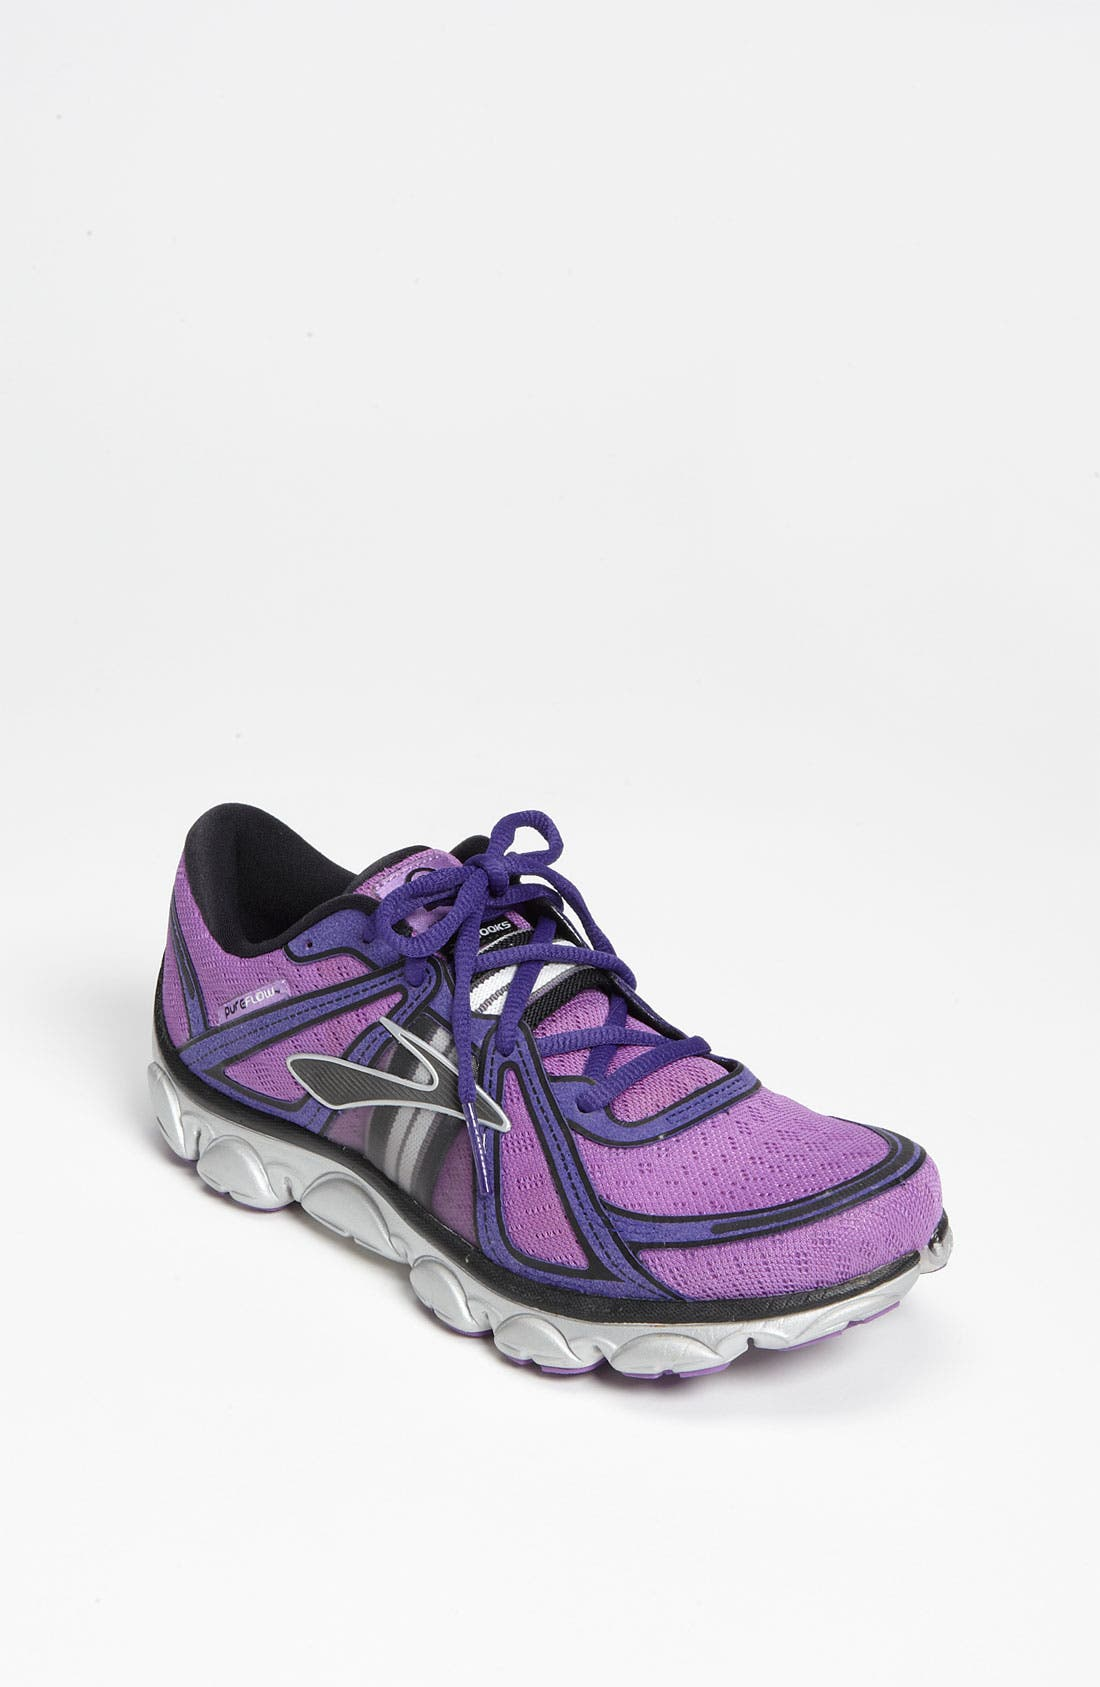 Main Image - Brooks 'PureFlow' Running Shoe (Women) (Regular Retail Price: $89.95)